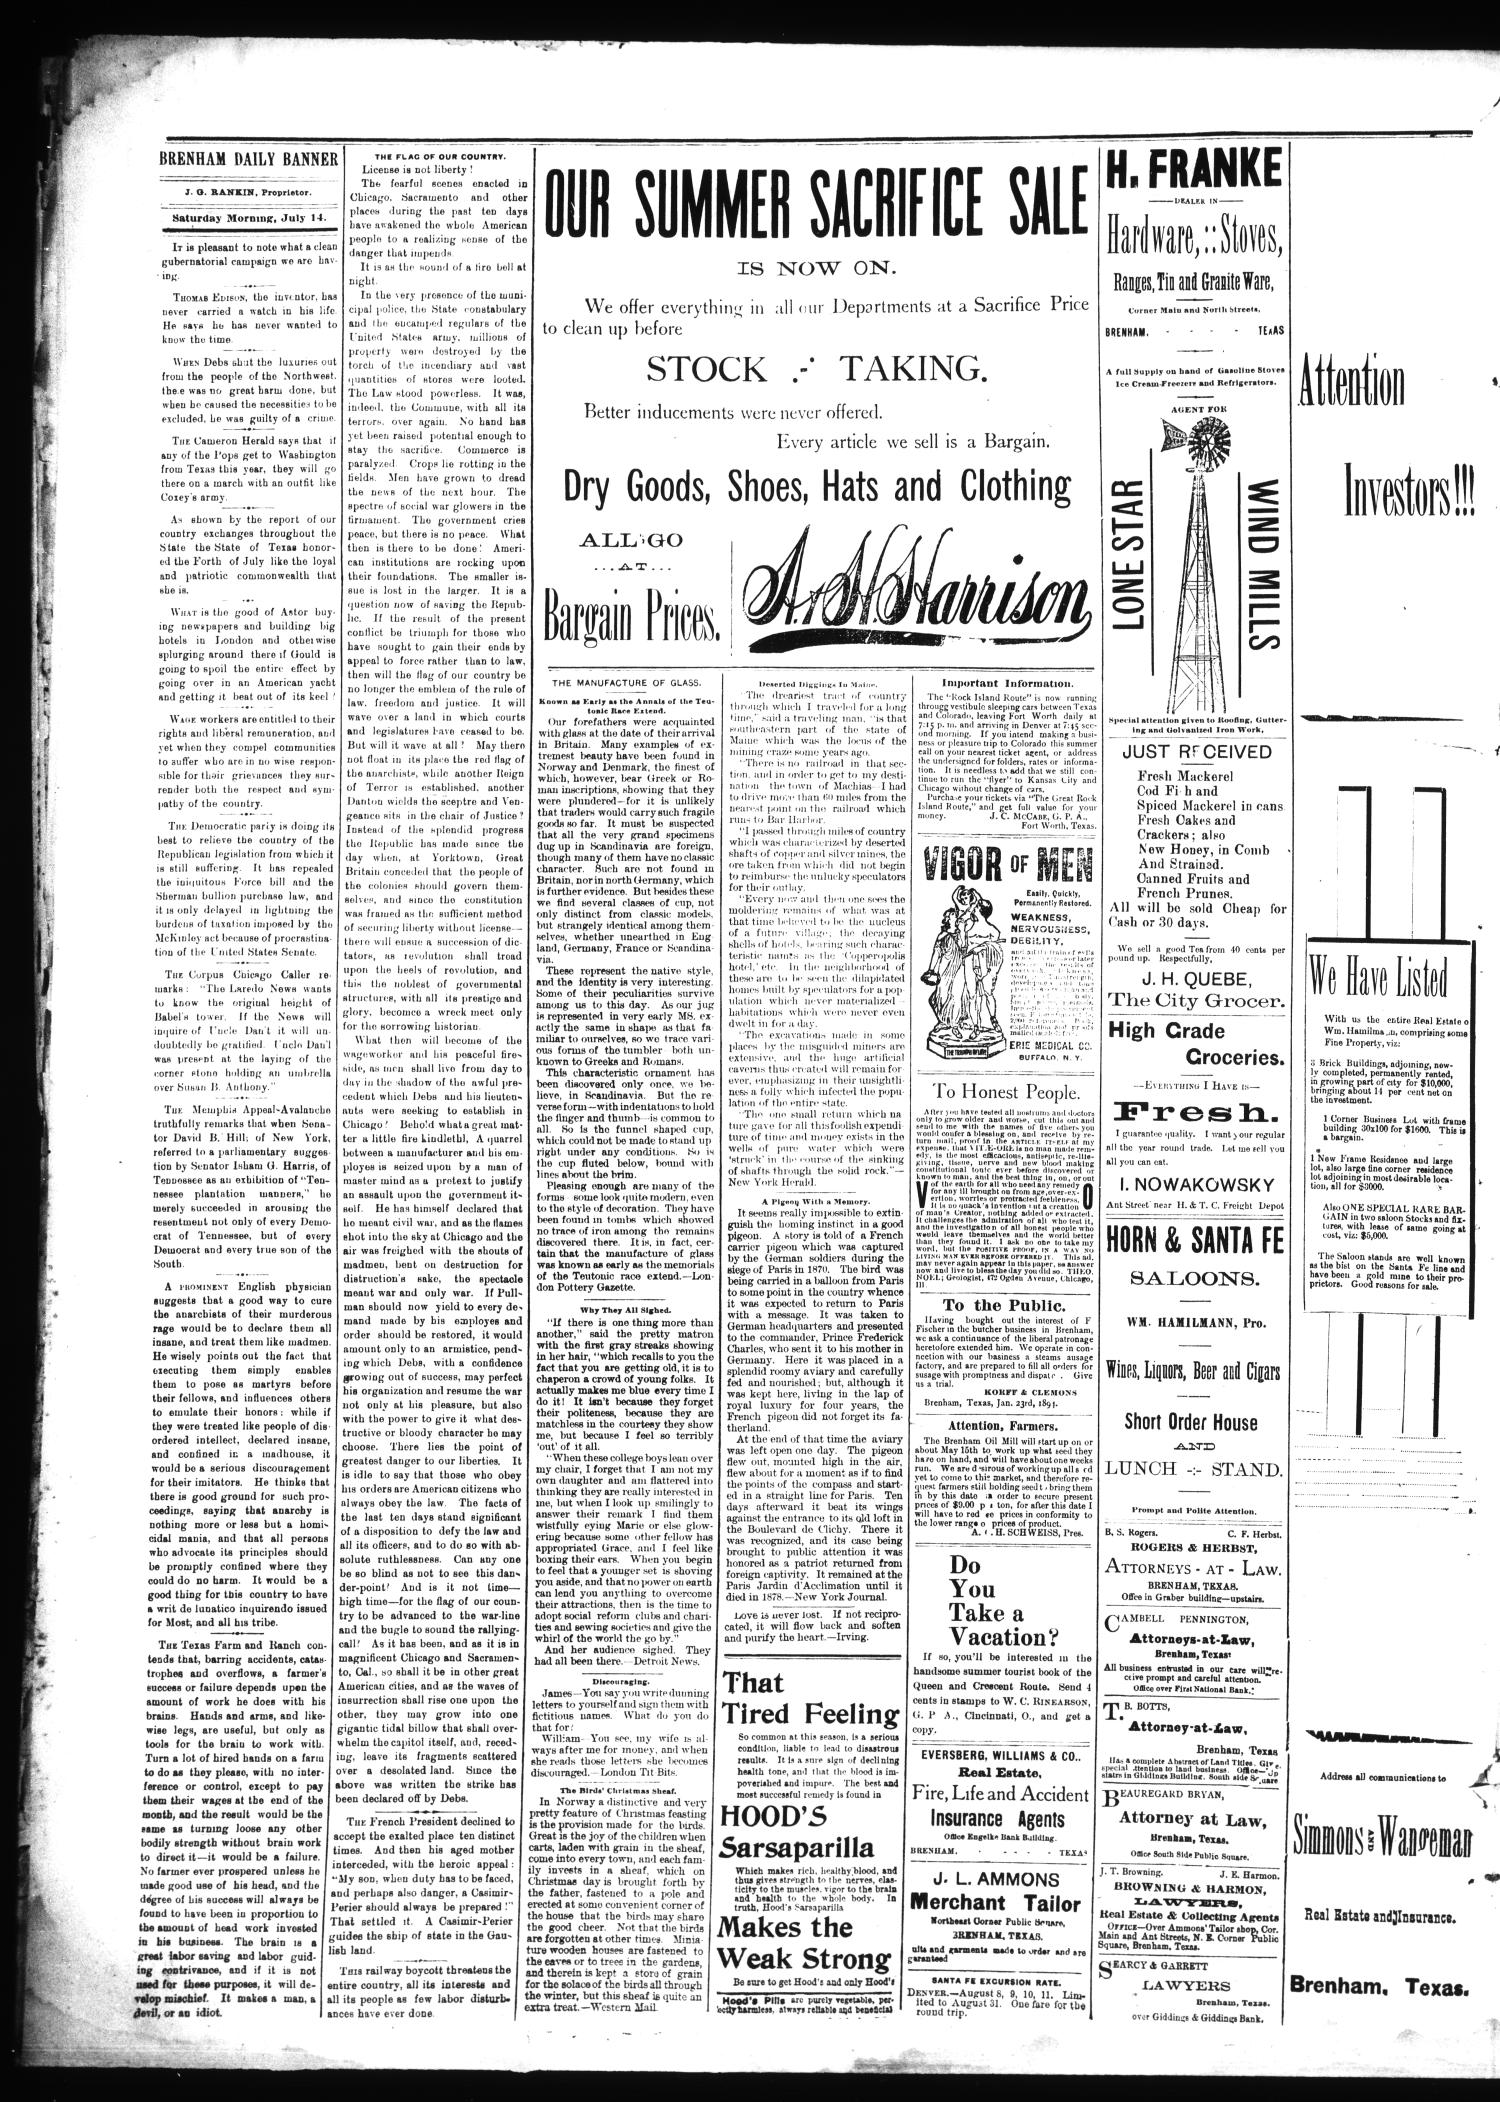 Brenham Daily Banner. (Brenham, Tex.), Vol. 19, No. 163, Ed. 1 Saturday, July 14, 1894                                                                                                      [Sequence #]: 2 of 4